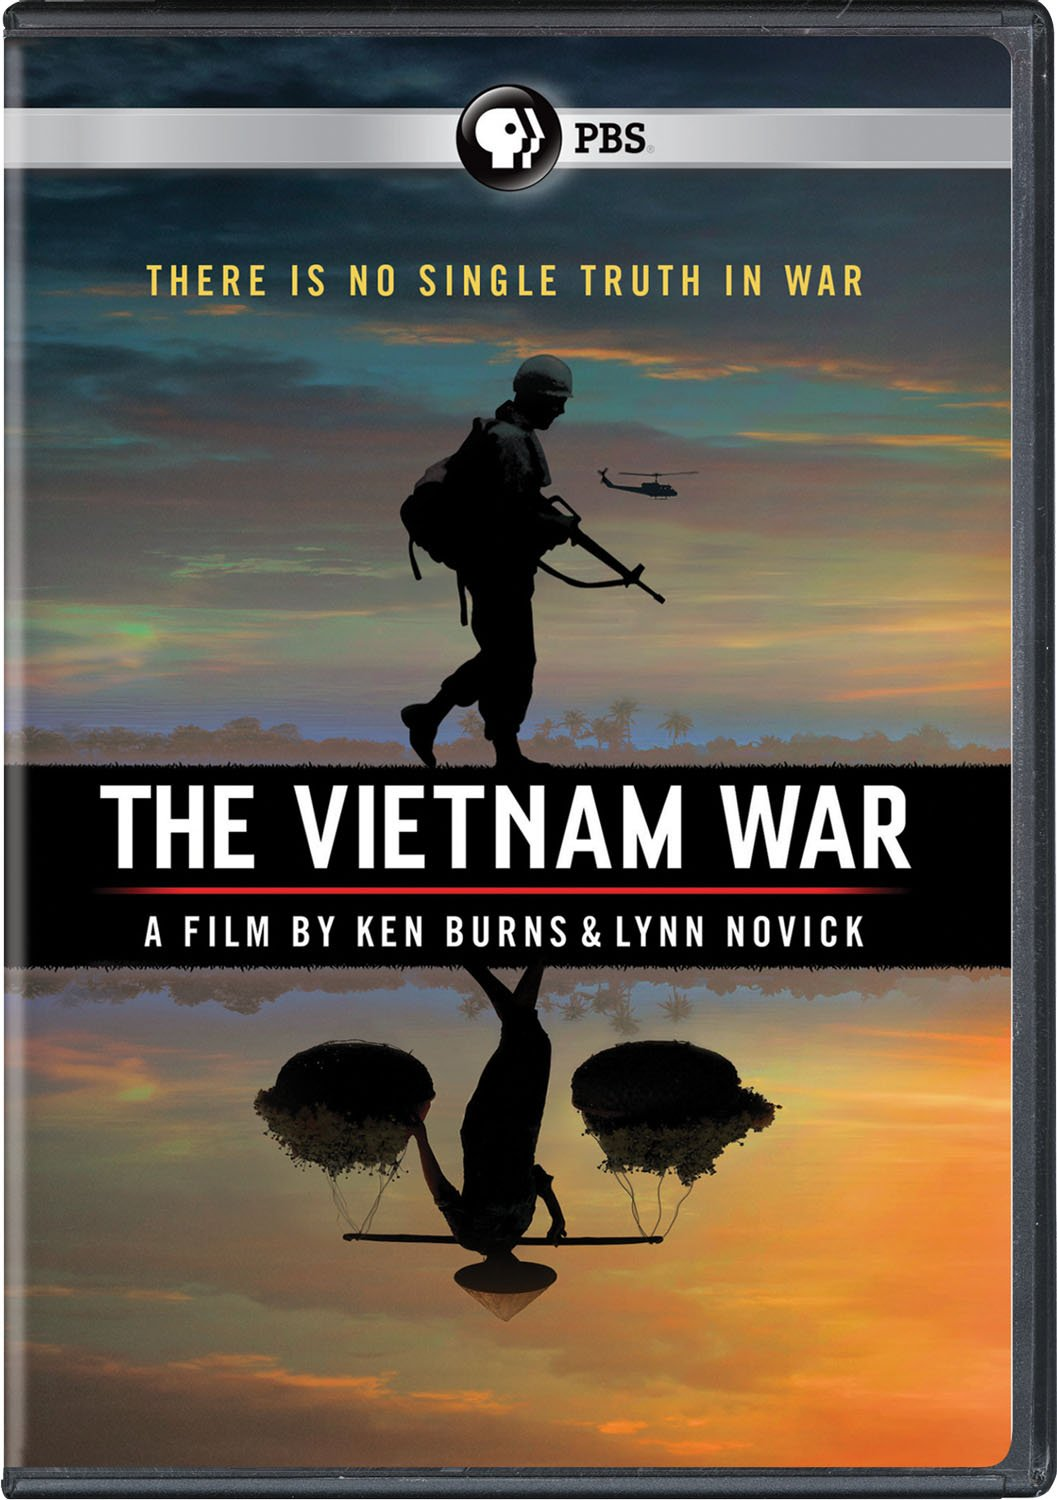 The Vietnam War: A Film by Ken Burns and Lynn Novick DVD by PBS DISTRIBUTION